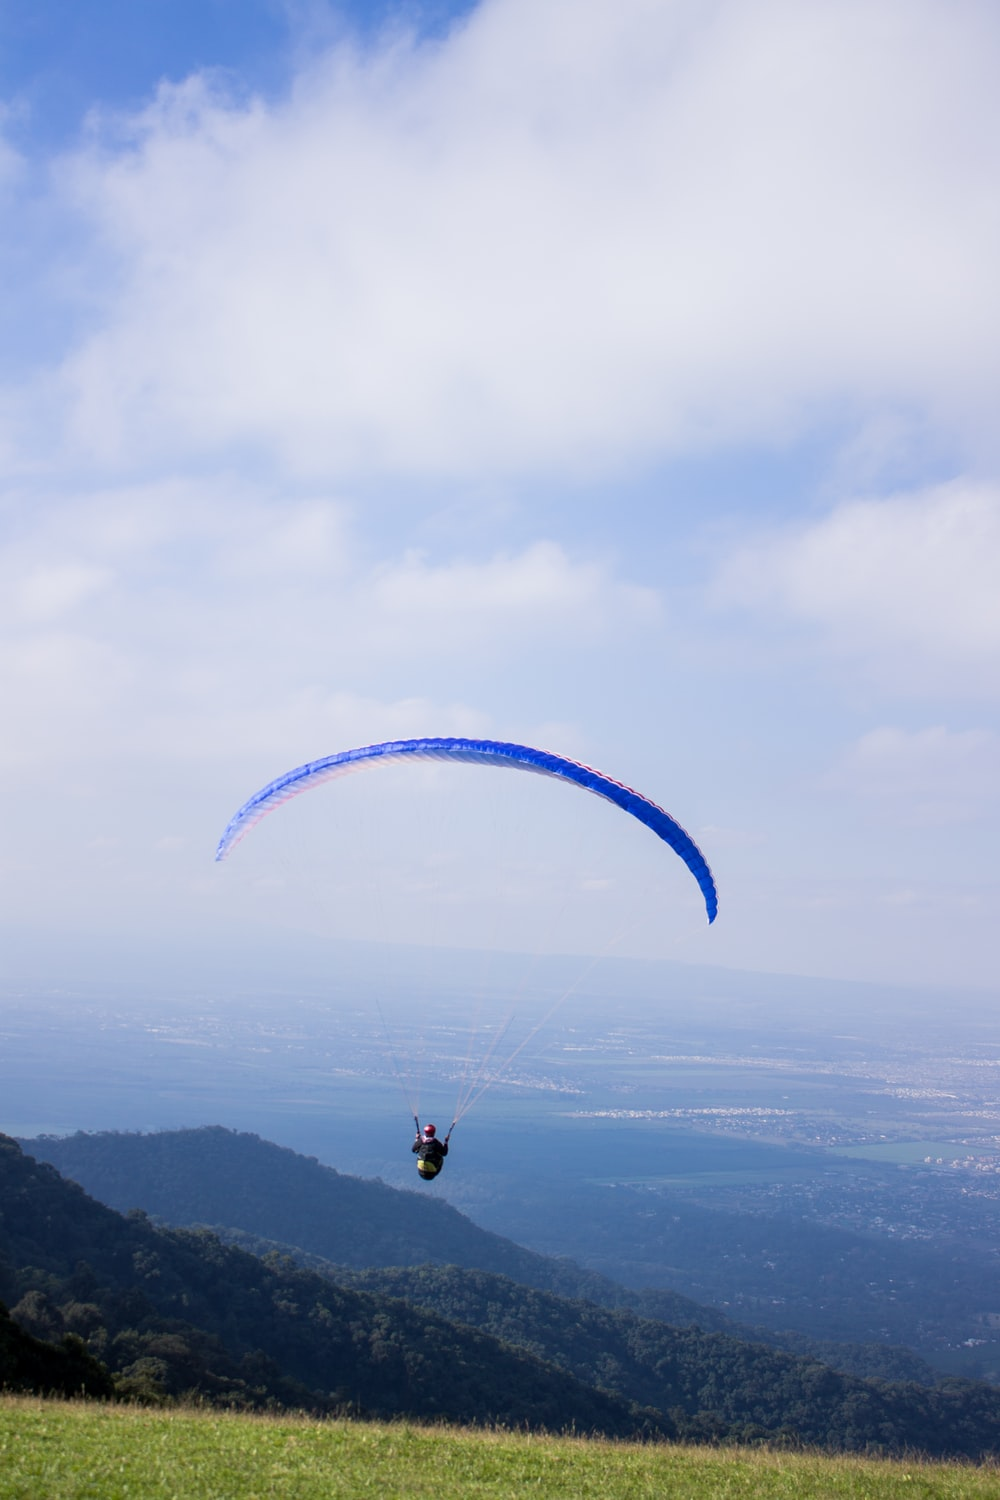 man with parachute near mountain and village